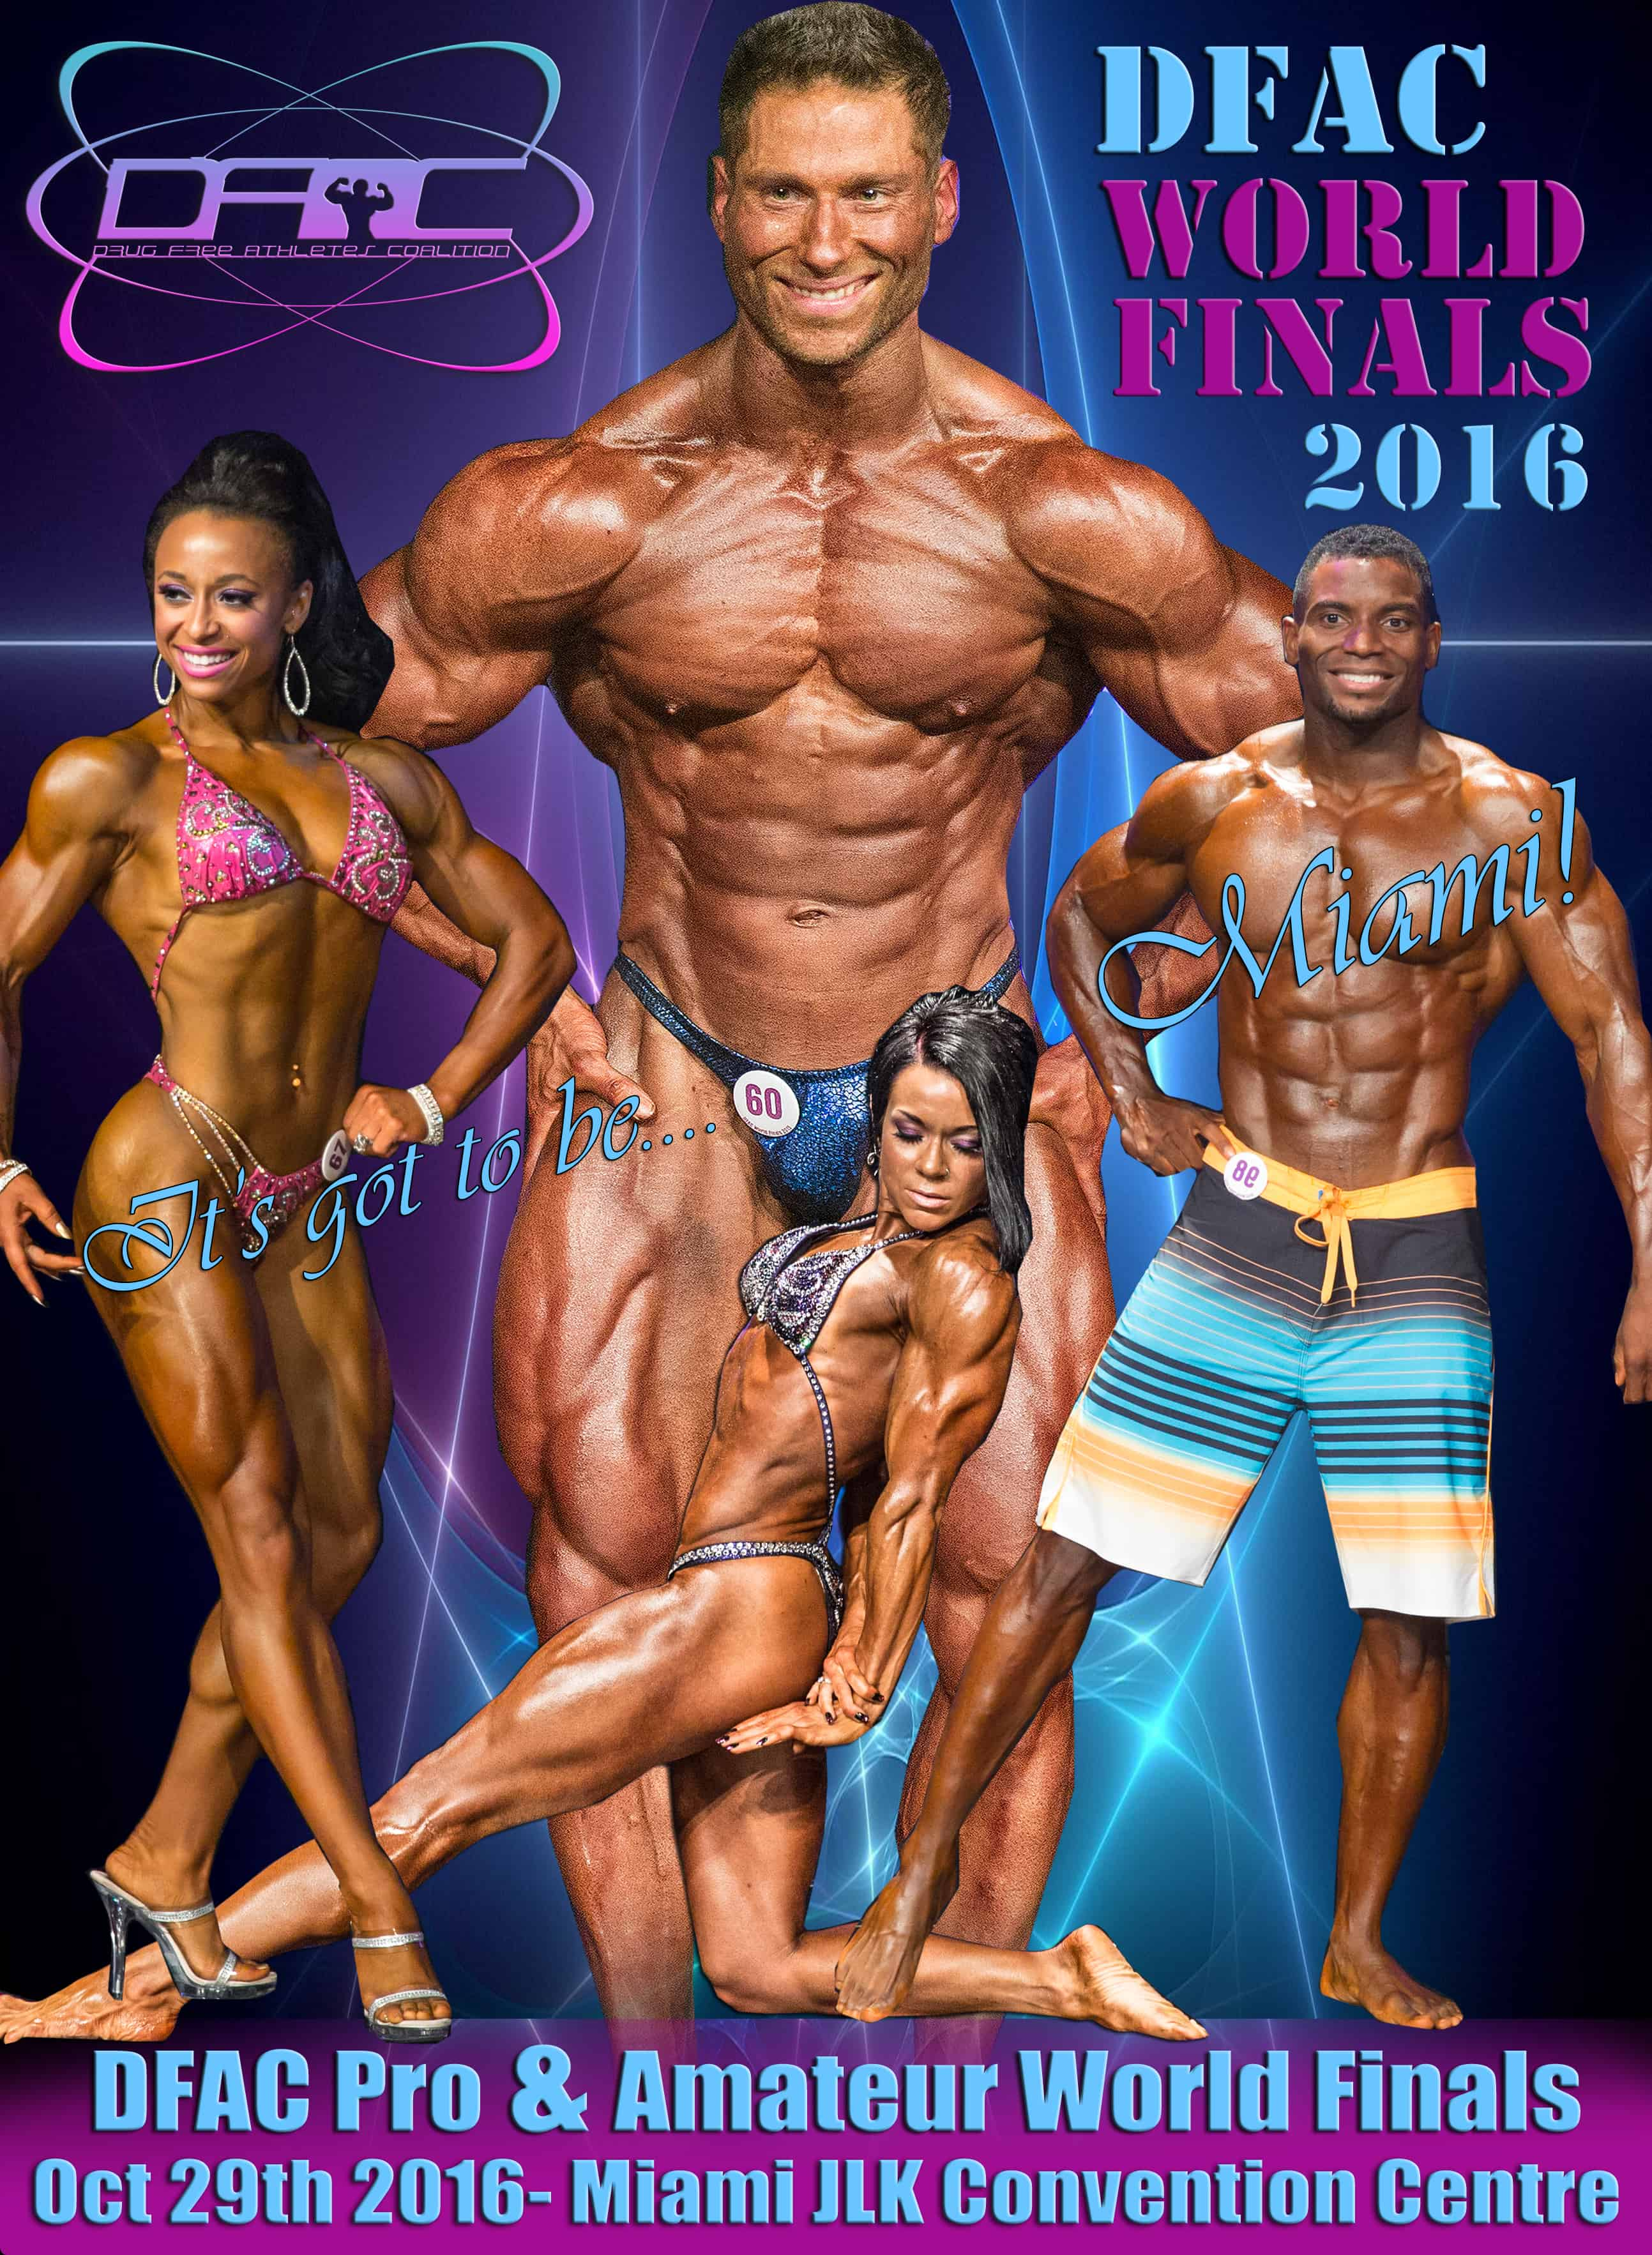 dfac miami 2016 2 - DFAC World Finals